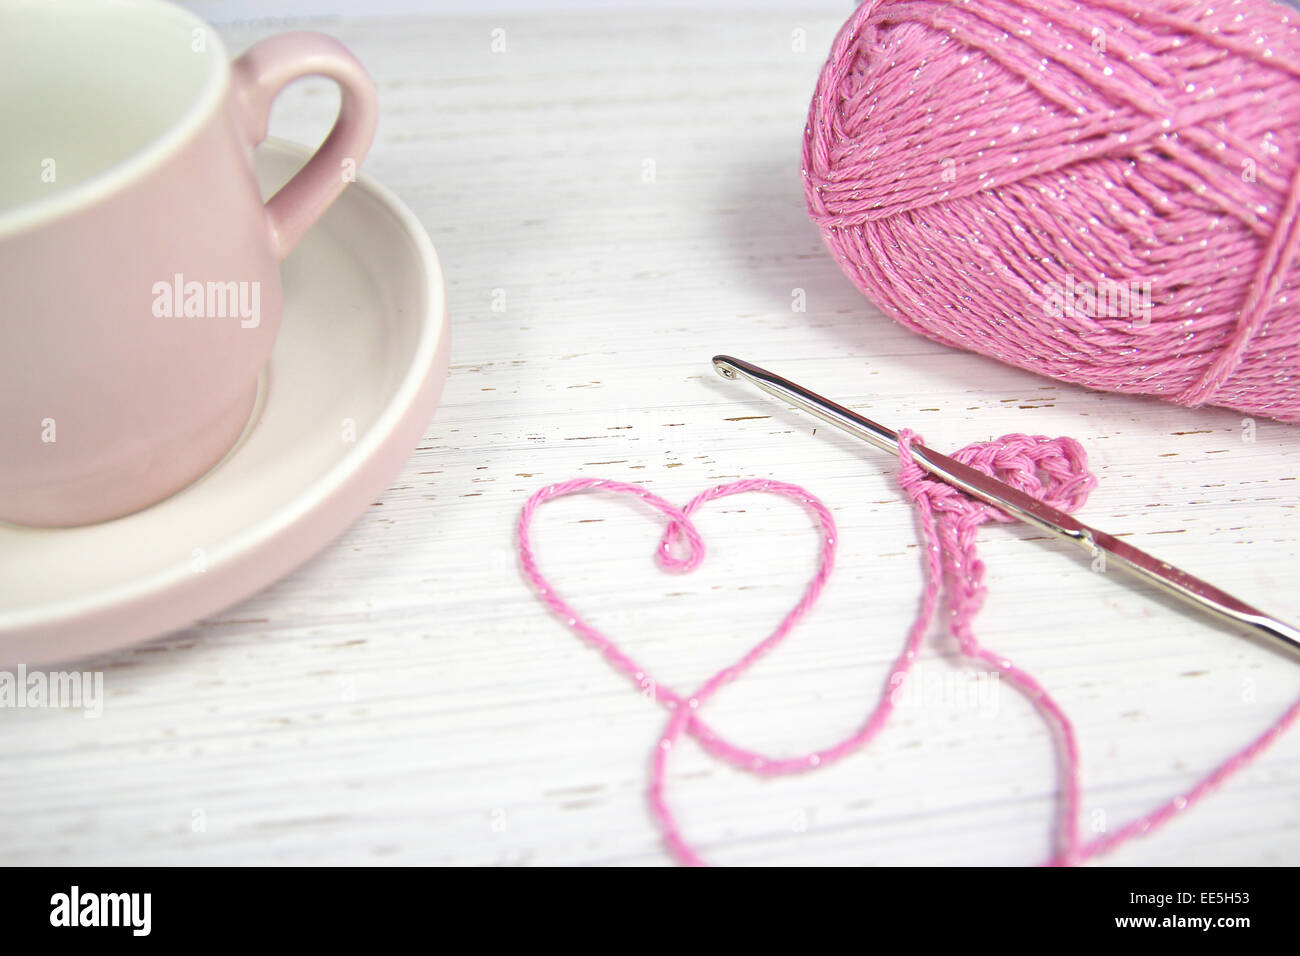 pink crochet background with yarn heart and coffee cup and crochet hook on wooden background - Stock Image